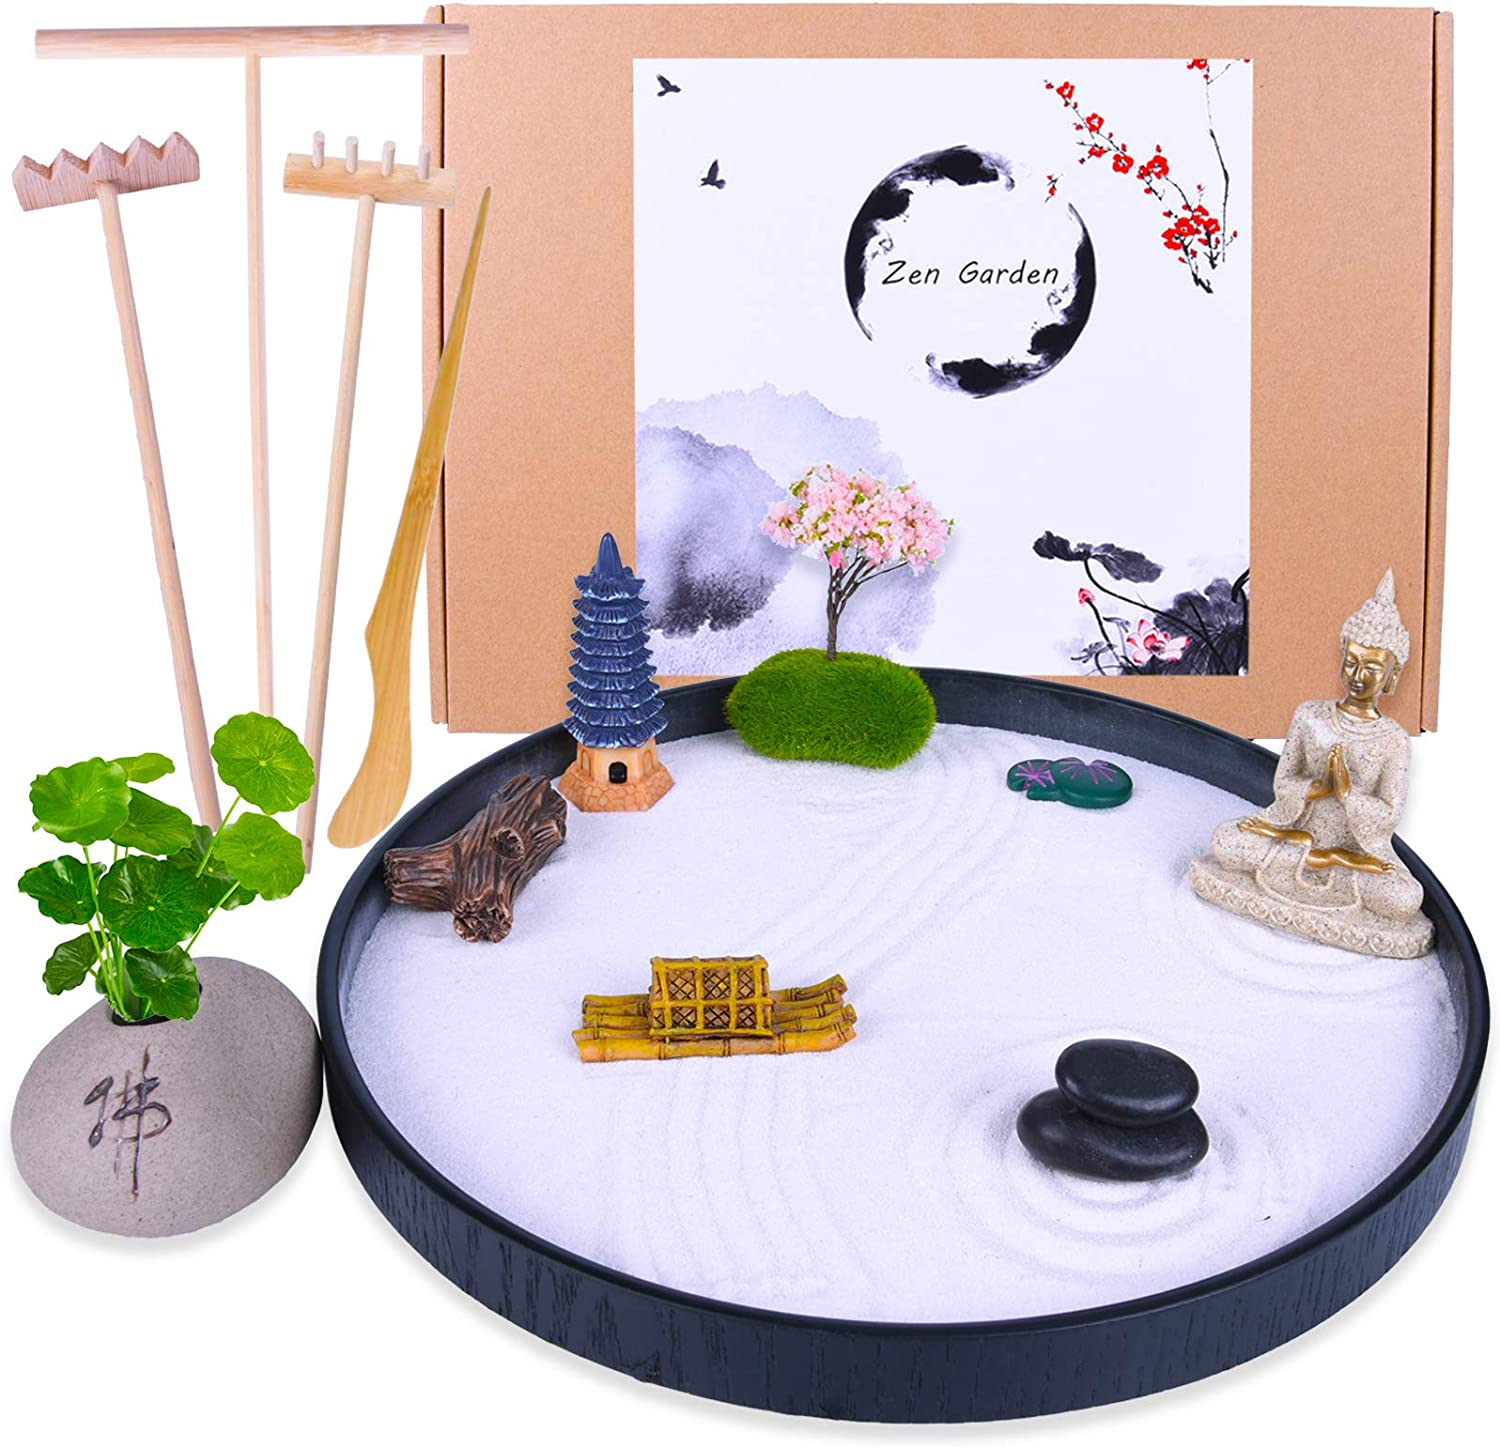 Japanese Zen Garden Kit - Premium Home & Office Desk Garden with Meditation Buddha Rock Mini Pagoda Boat Cherry Trees - Meditation Gift Set for Relaxation - 4 Rake Tools and Accessories(Round)